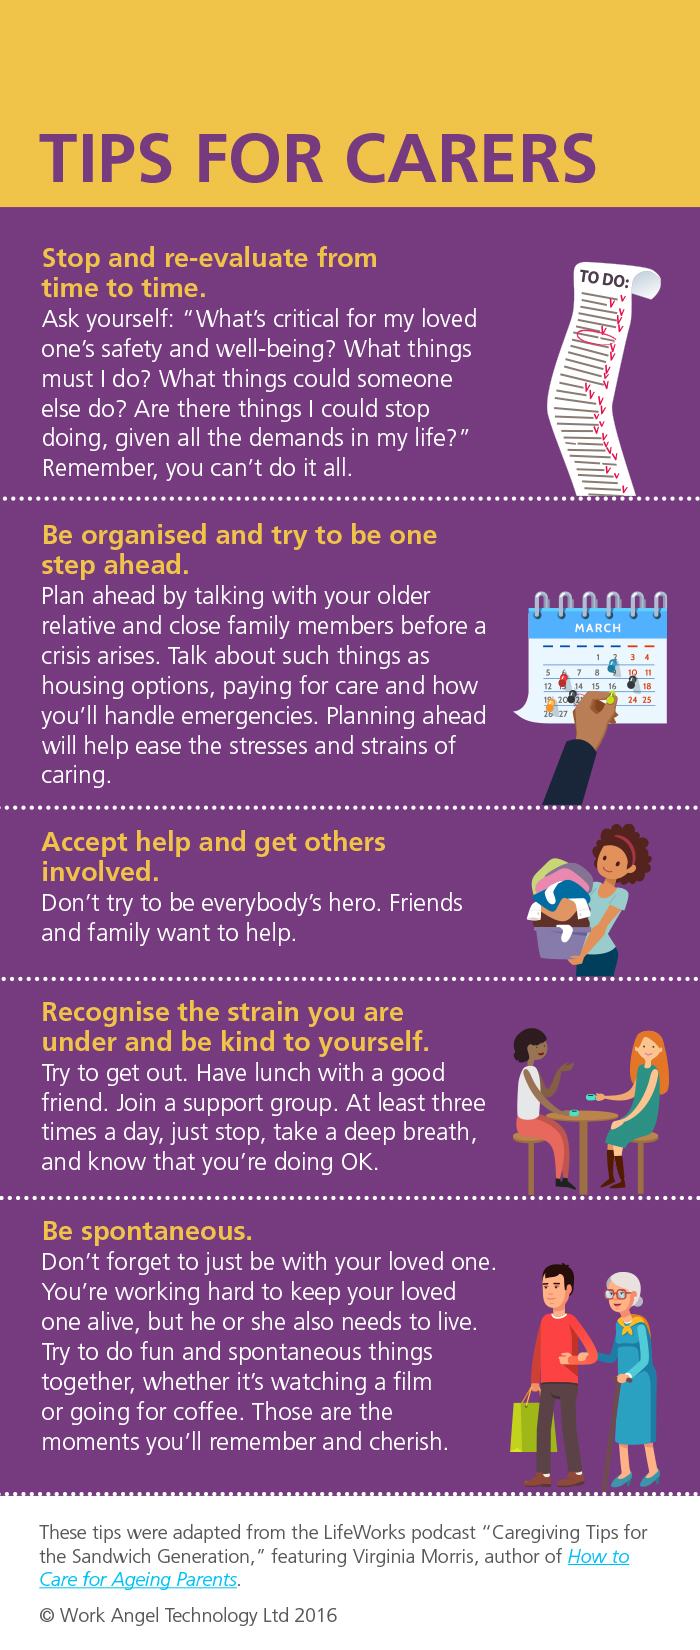 tips-for-carers-infographic-uk